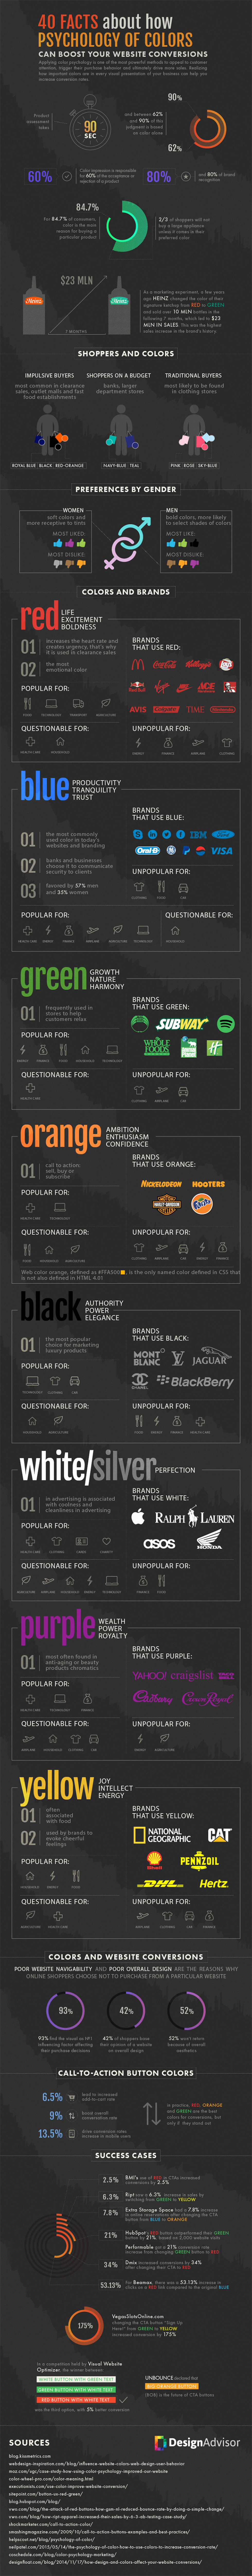 How to Choose the Right Colors for Your Small Business Website [Infographic] Infographic